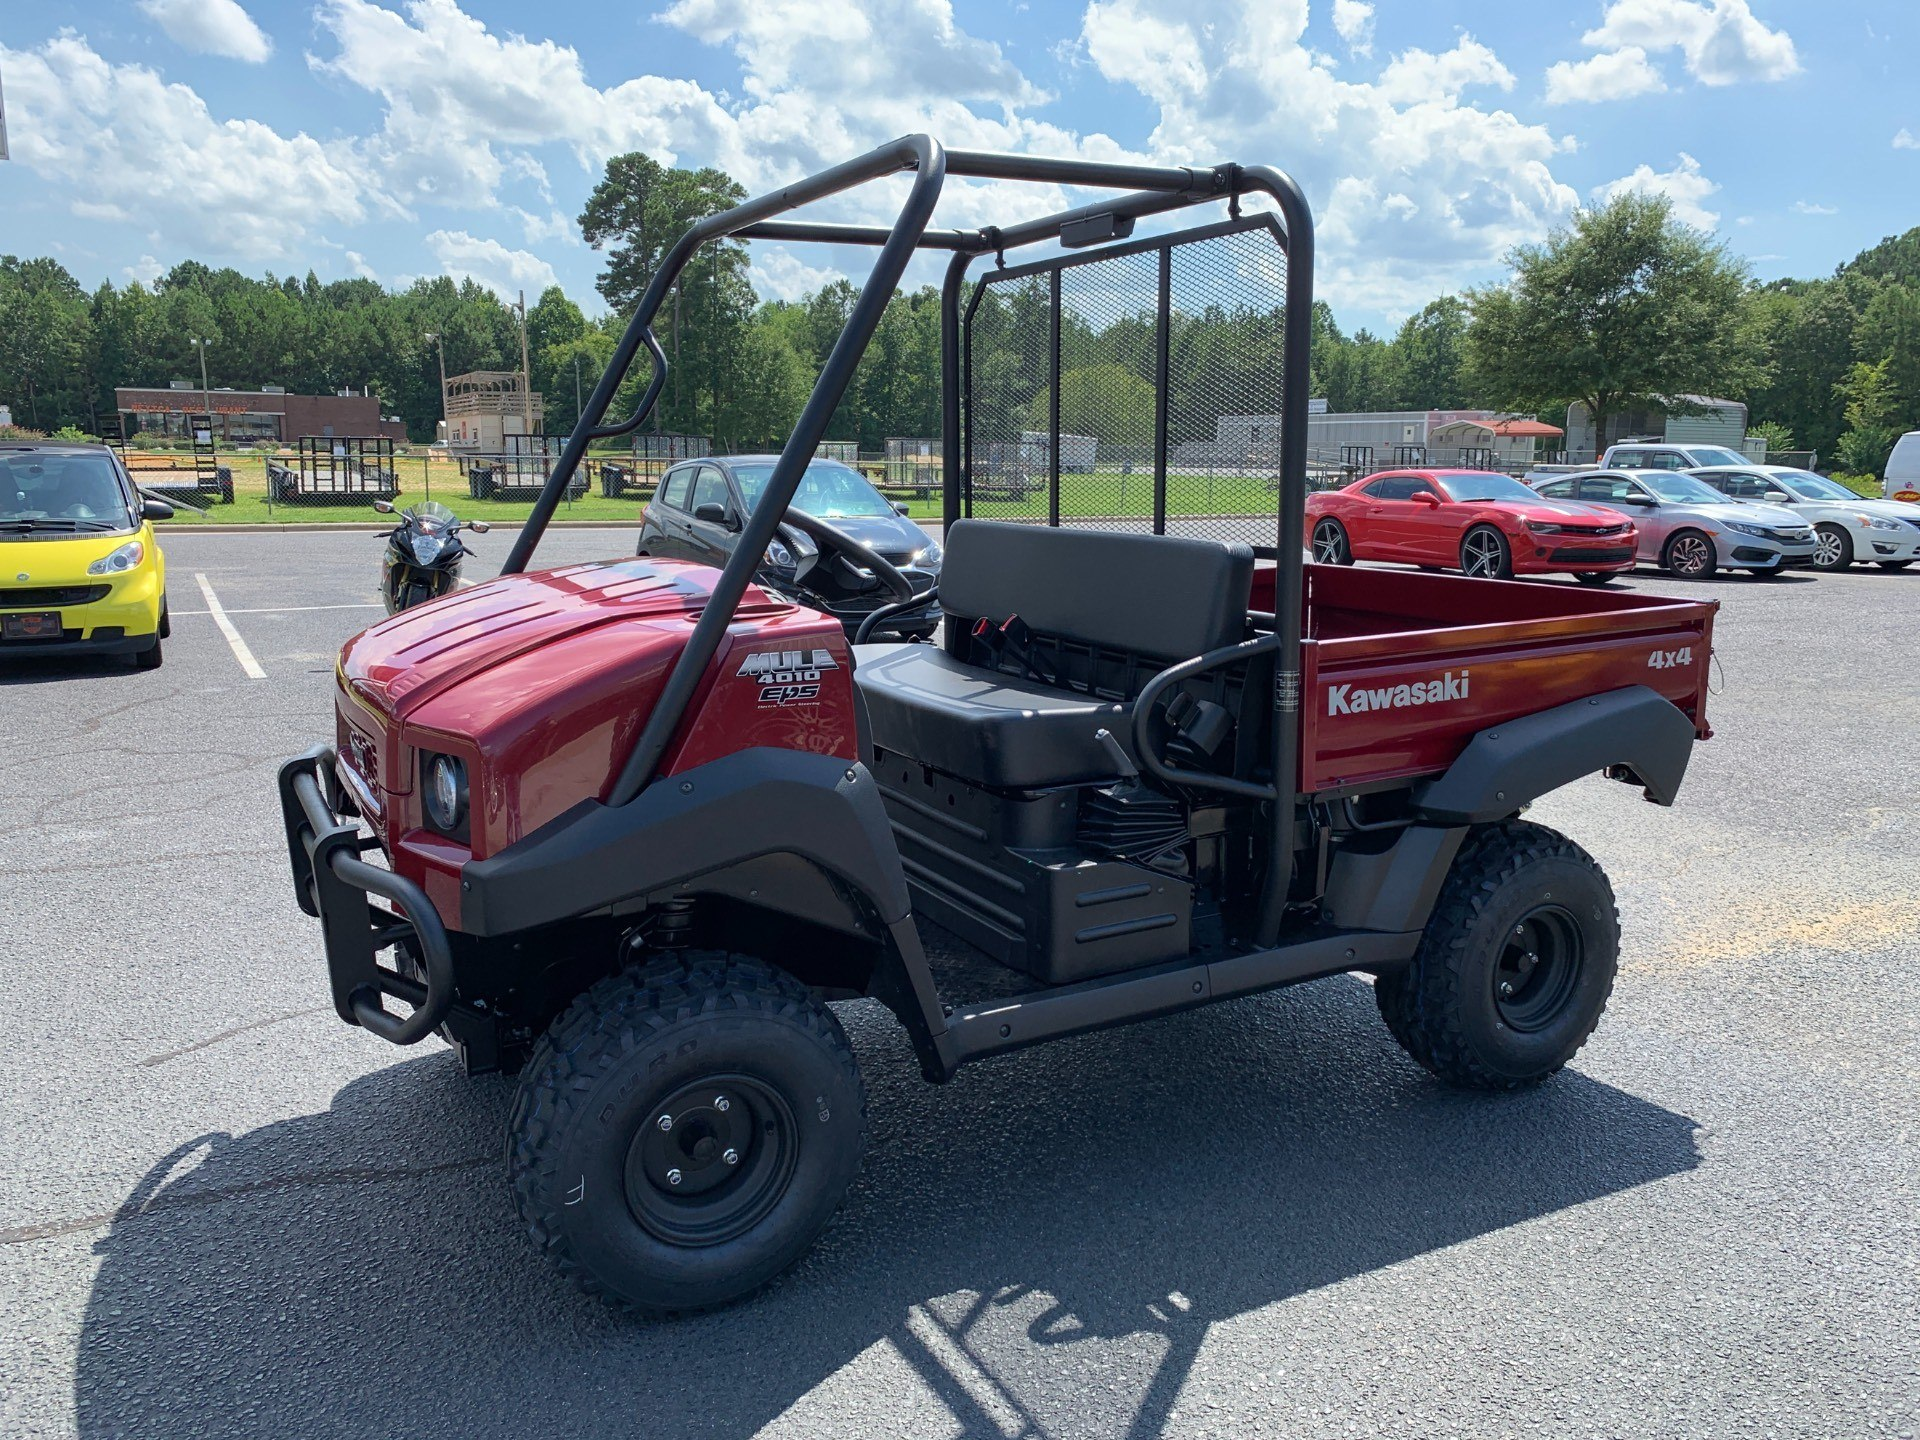 2020 Kawasaki Mule 4010 4x4 in Greenville, North Carolina - Photo 6